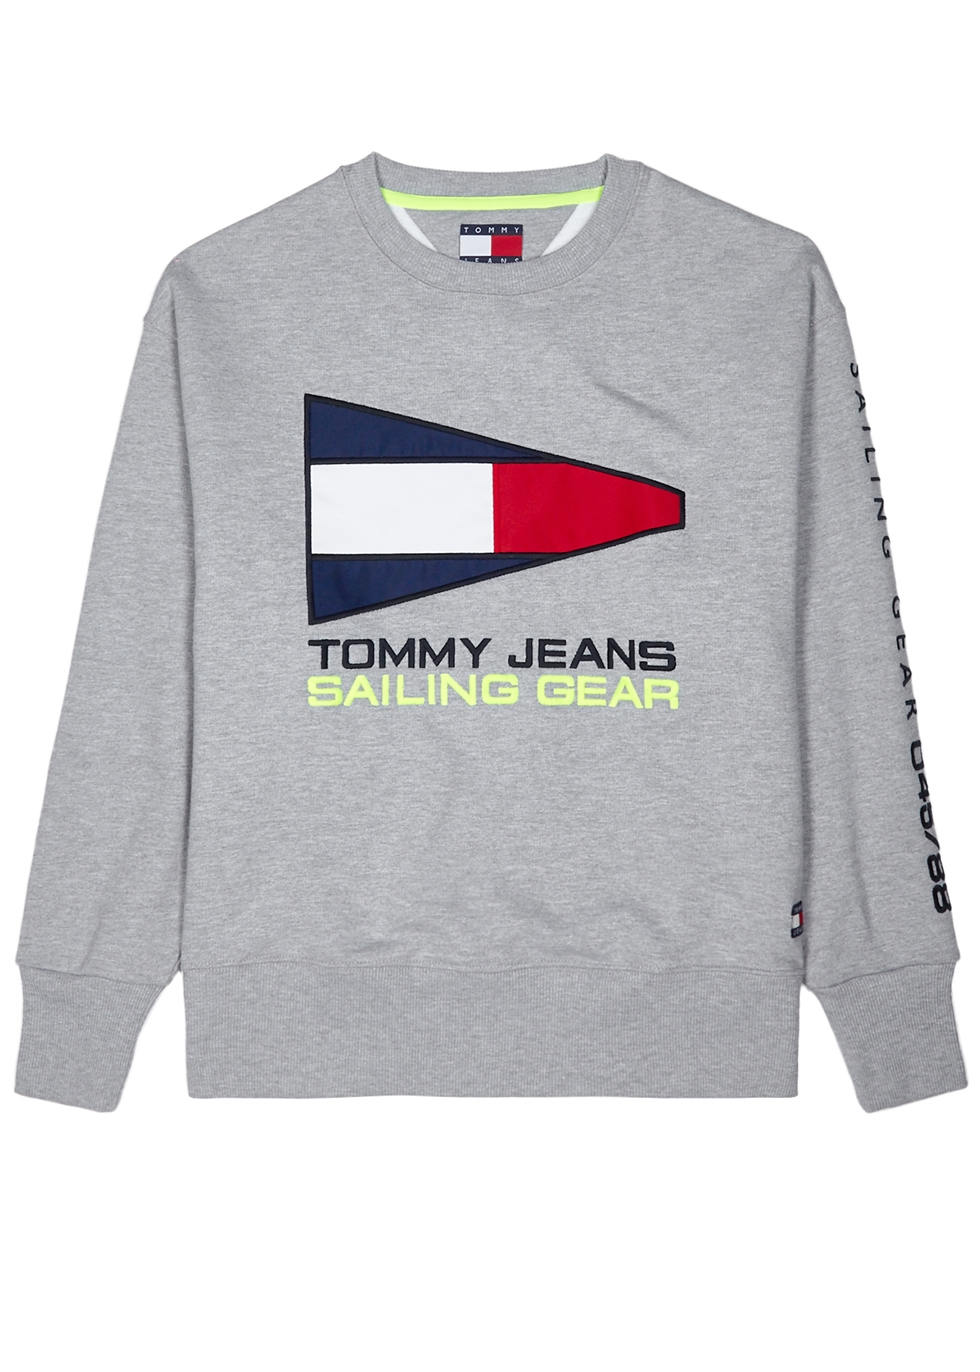 TOMMY JEANS 90S Sailing Capsule Flag Logo Crew Neck Sweatshirt In Gray Marl - Gray in Grey